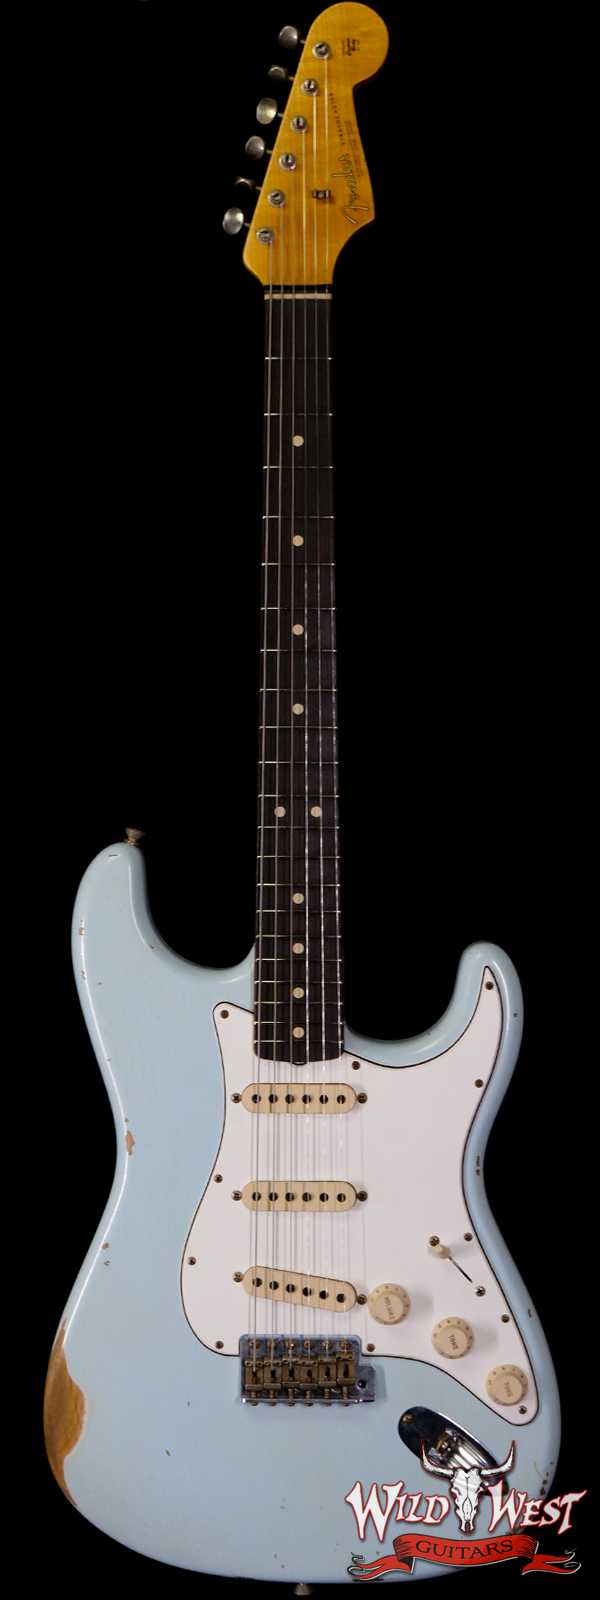 Fender Custom Shop 1963 Stratocaster Relic AAA Rosewood Board with Quartersawn Maple Neck Sonic Blue